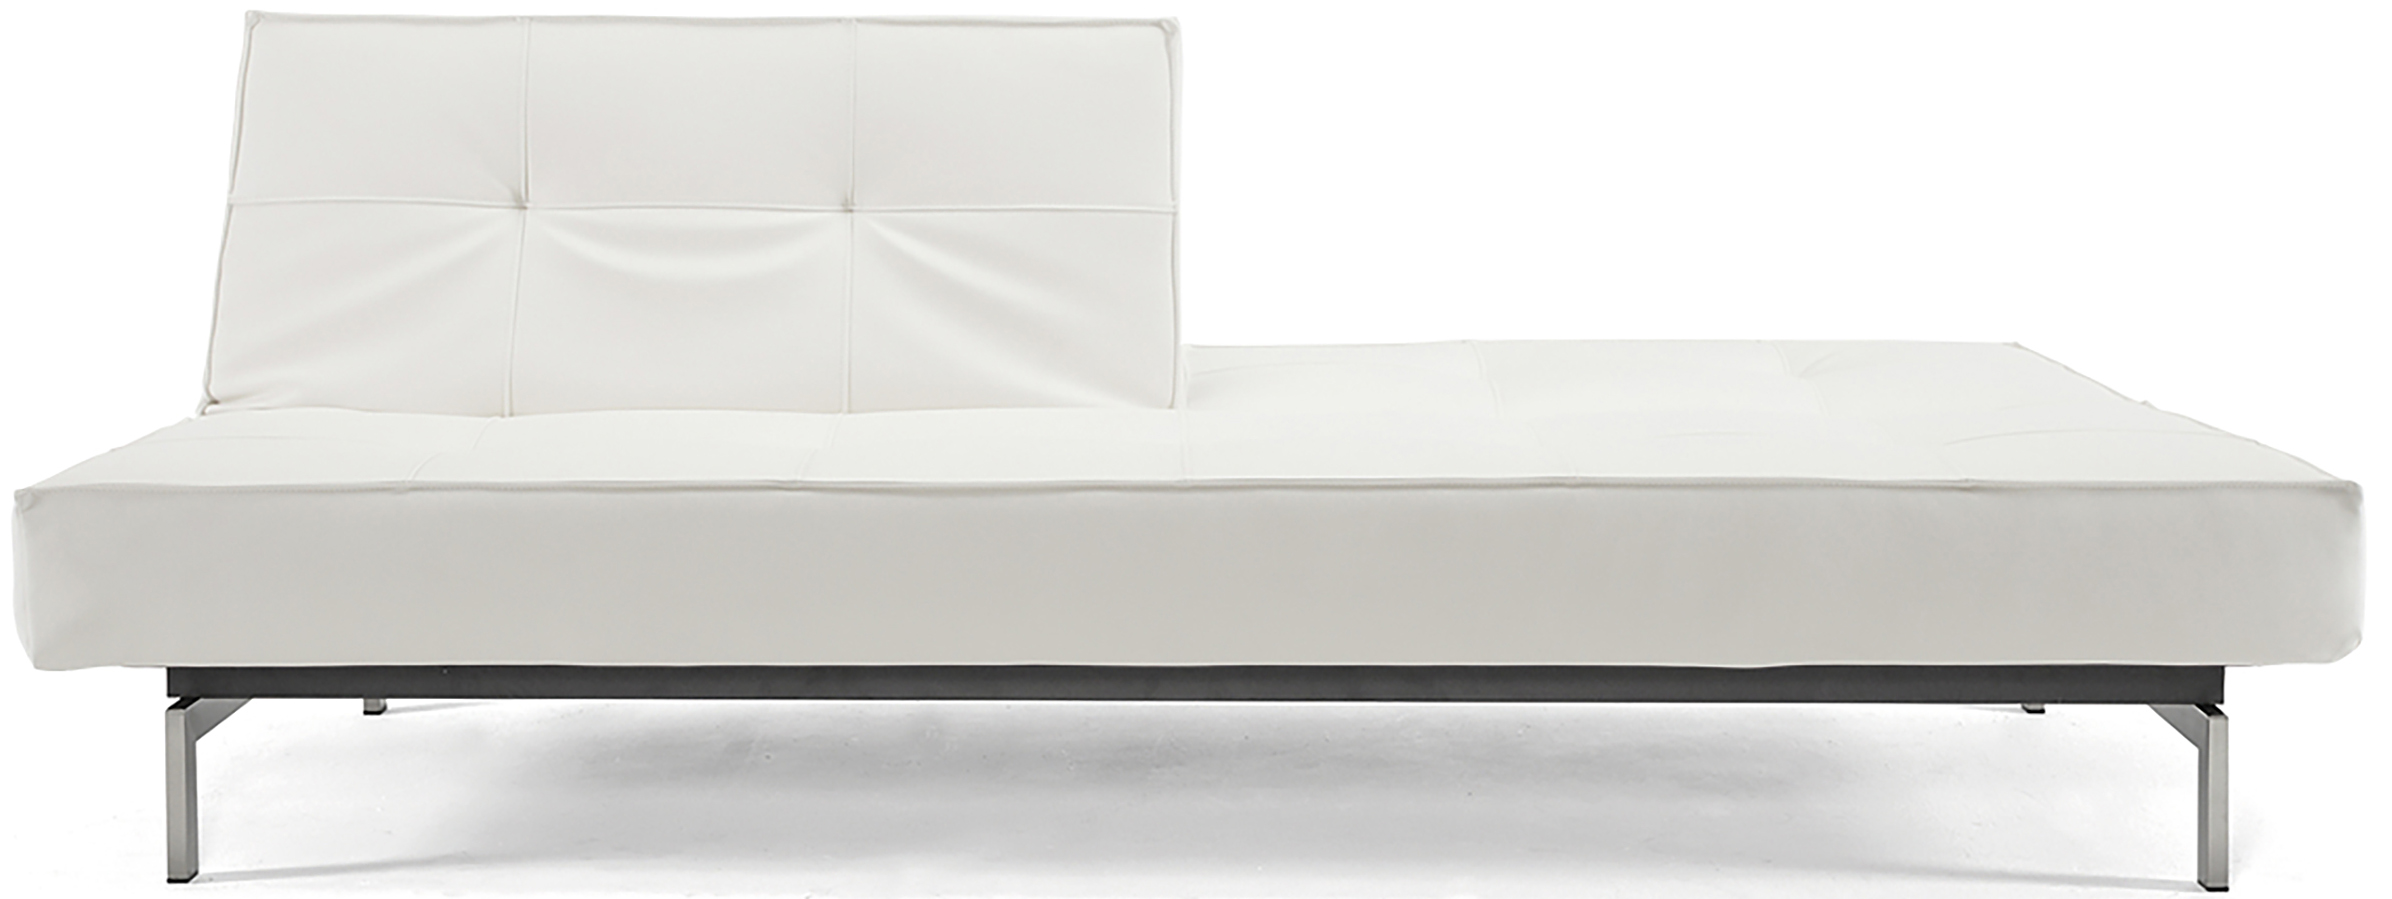 white splitback sofa